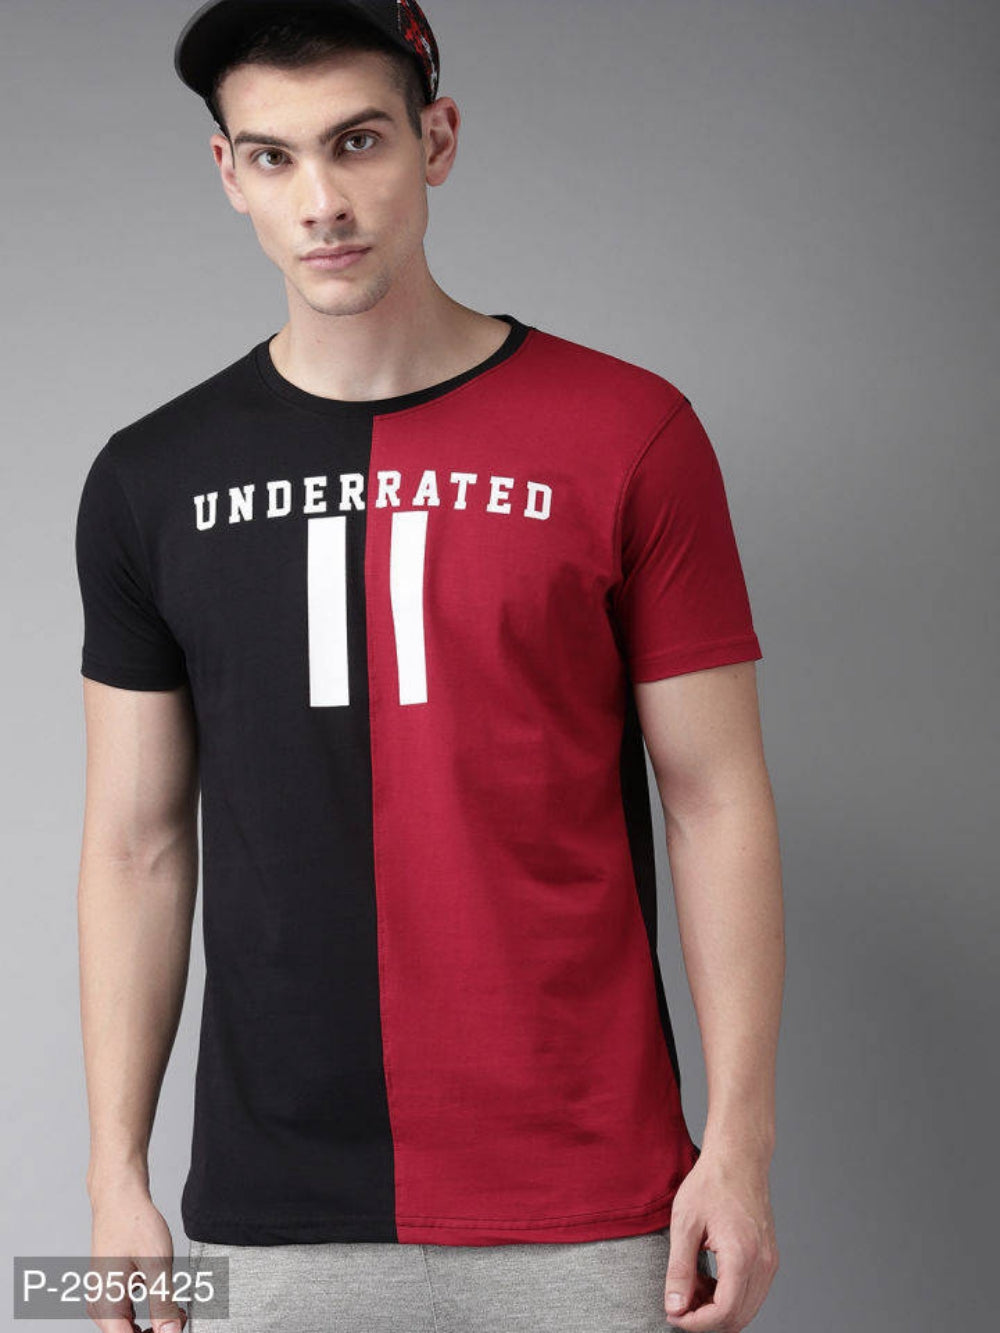 Charcoal Black & Cherry Red Colour Black Short Sleeve T-shirt